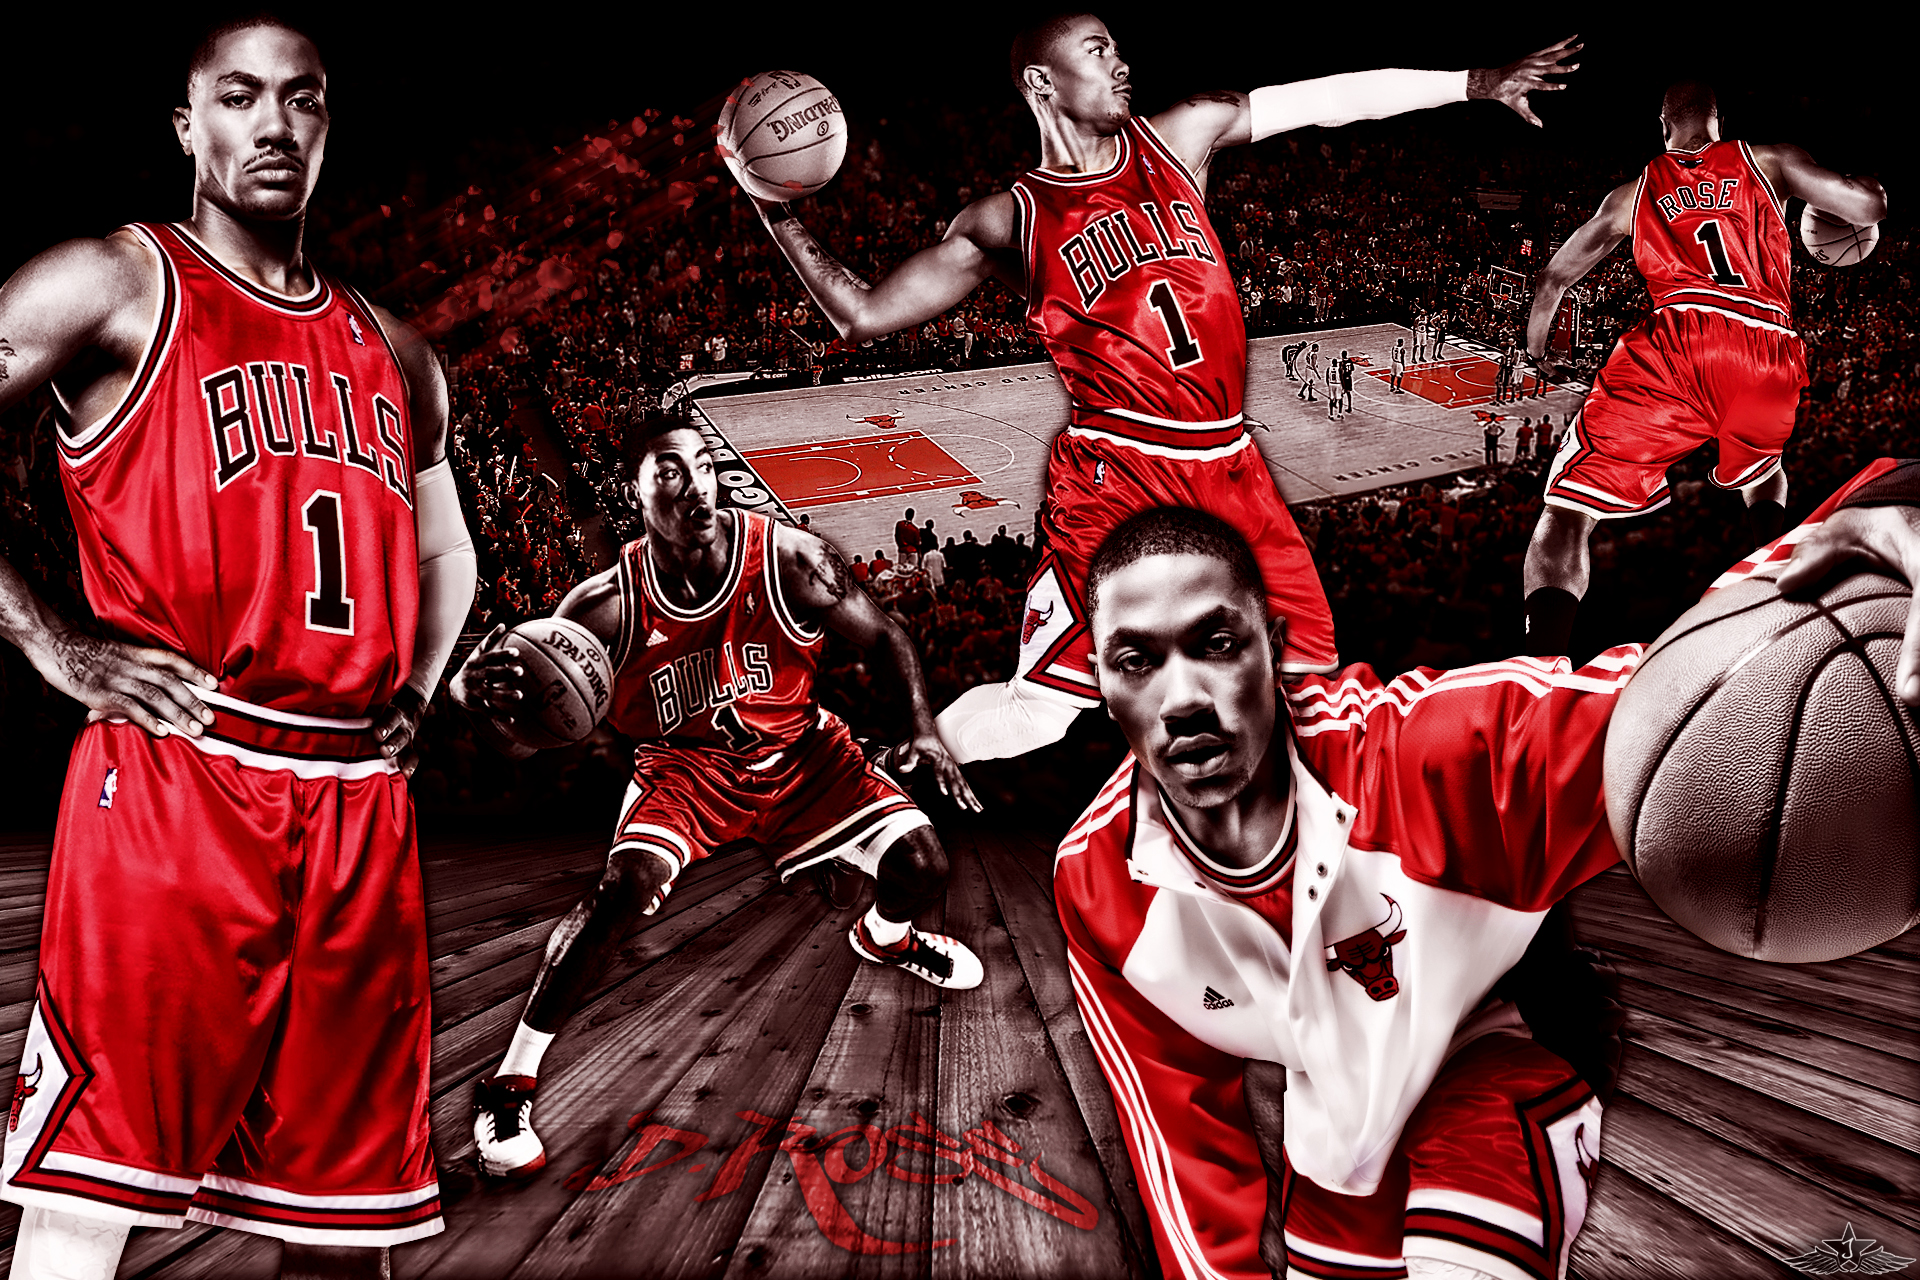 [HQ] Wallpaper Derrick Rose of Chicago Bulls 1920x by 1920x1280